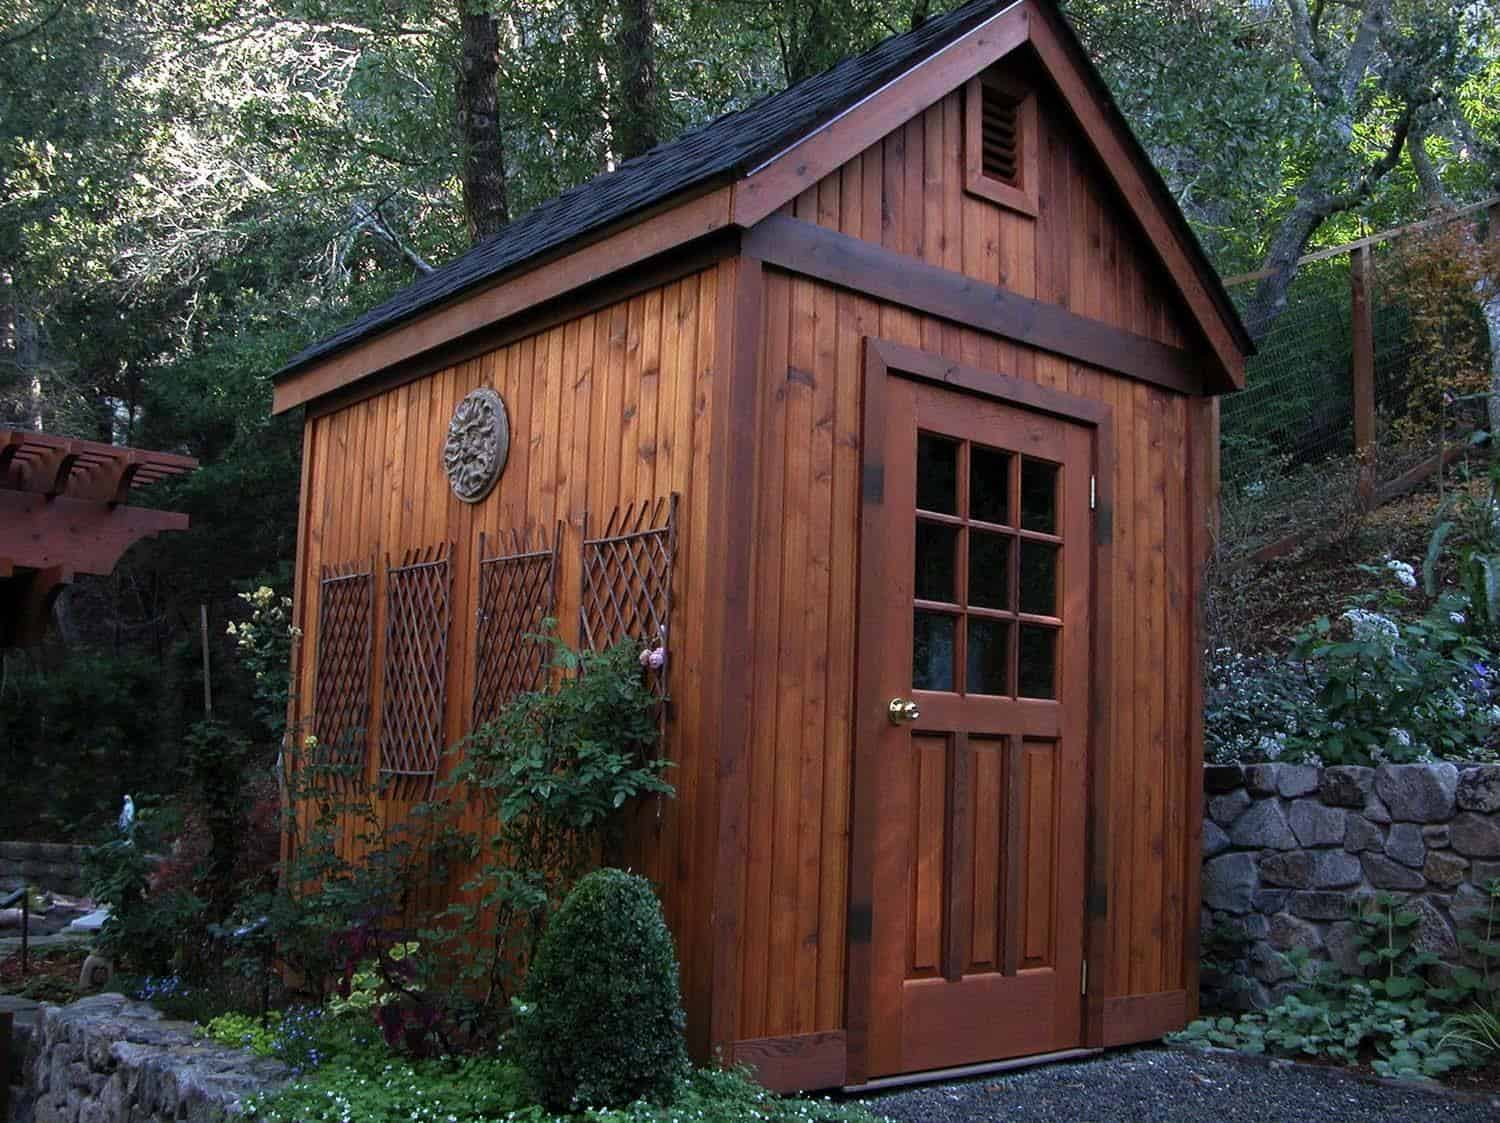 Garden Shed Ideas-10-1 Kindesign